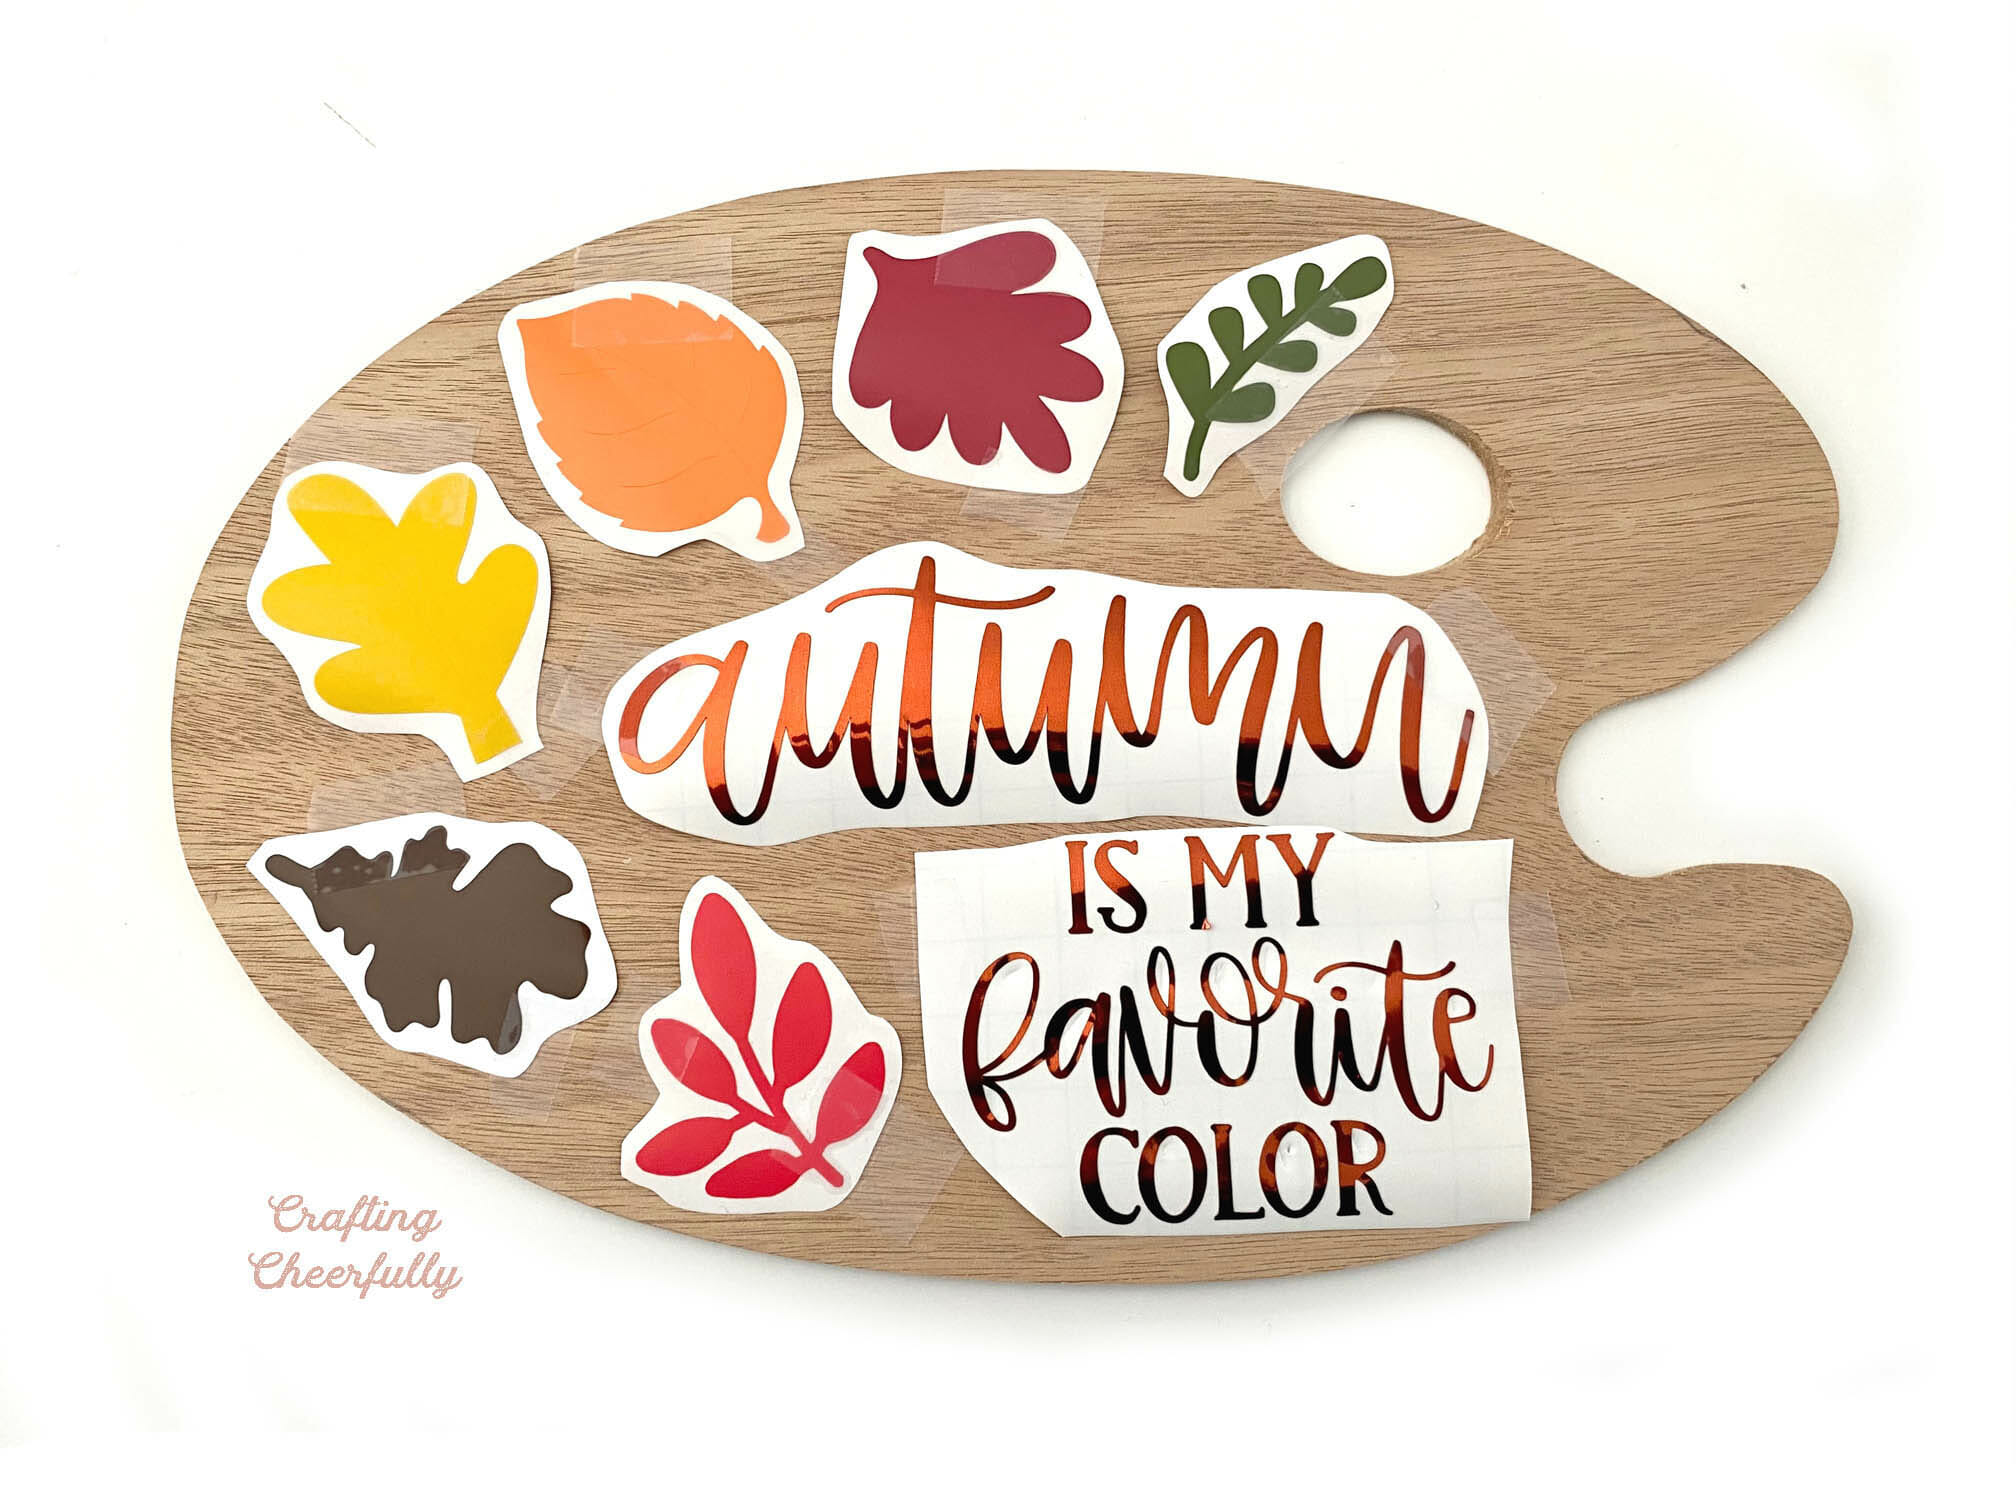 Wooden paint palette with cut out vinyl leaves laying on top of it.